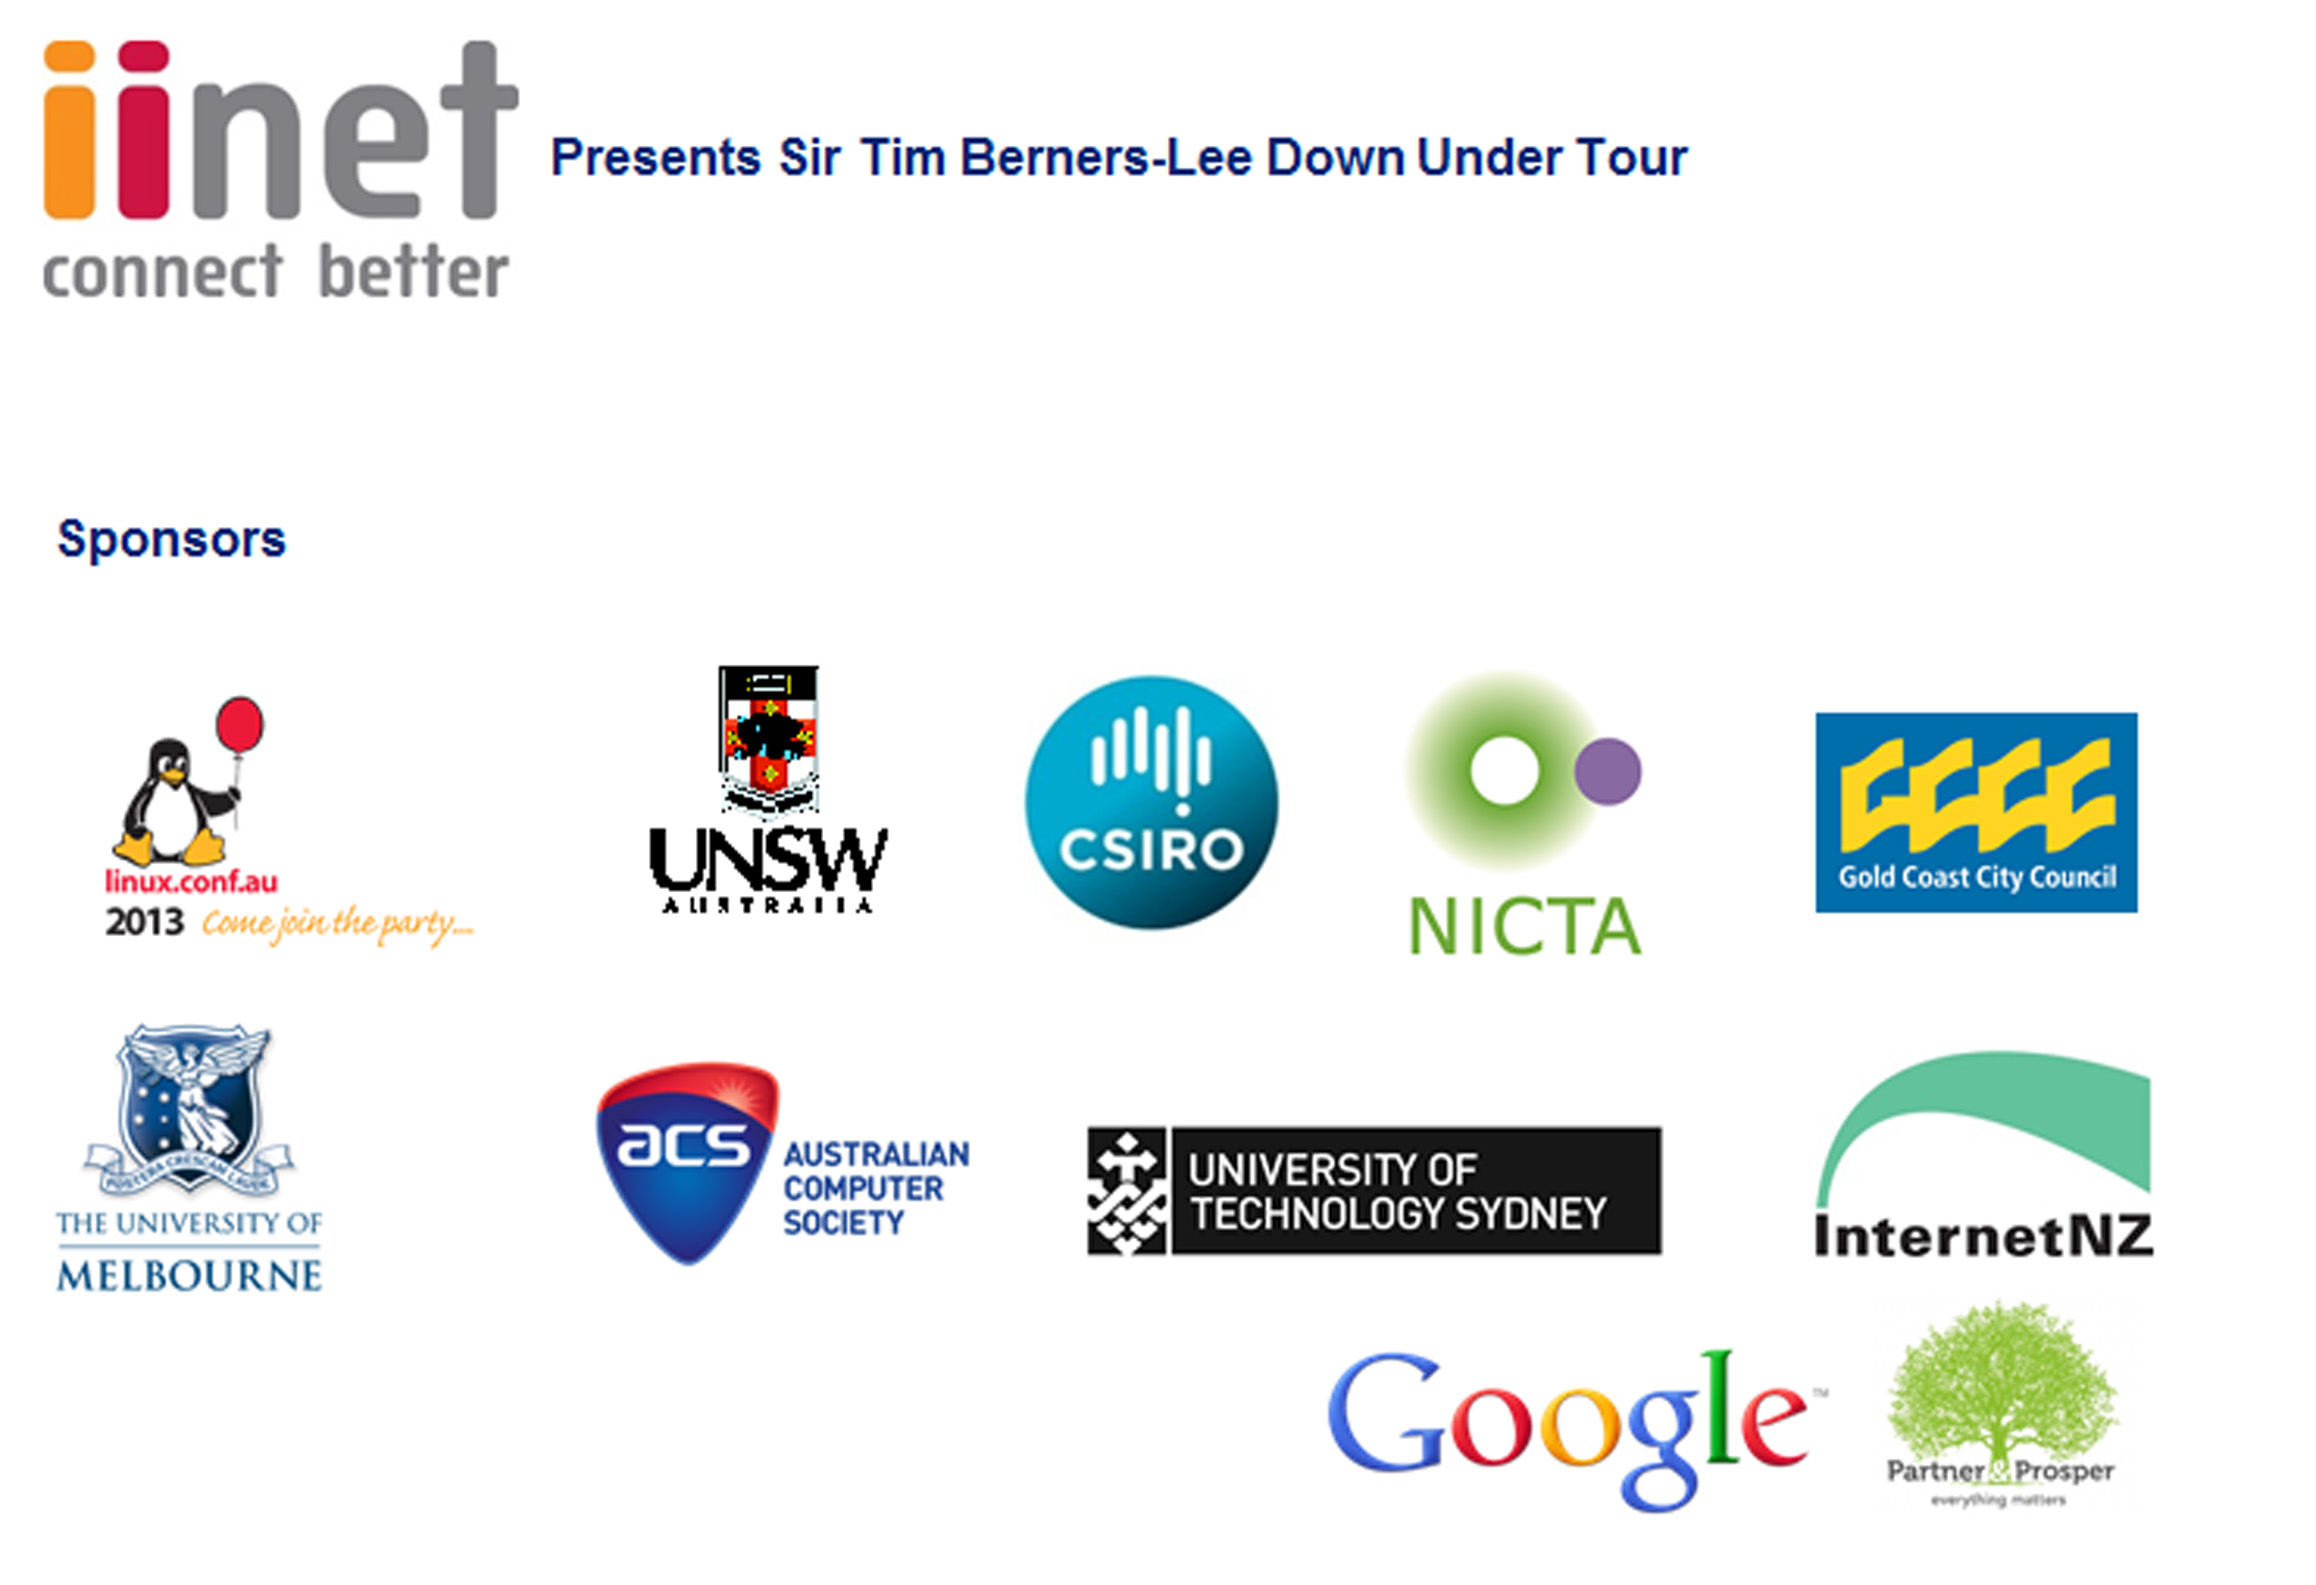 iiNet Tim Berners-Lee Down Under Tour Sponsors